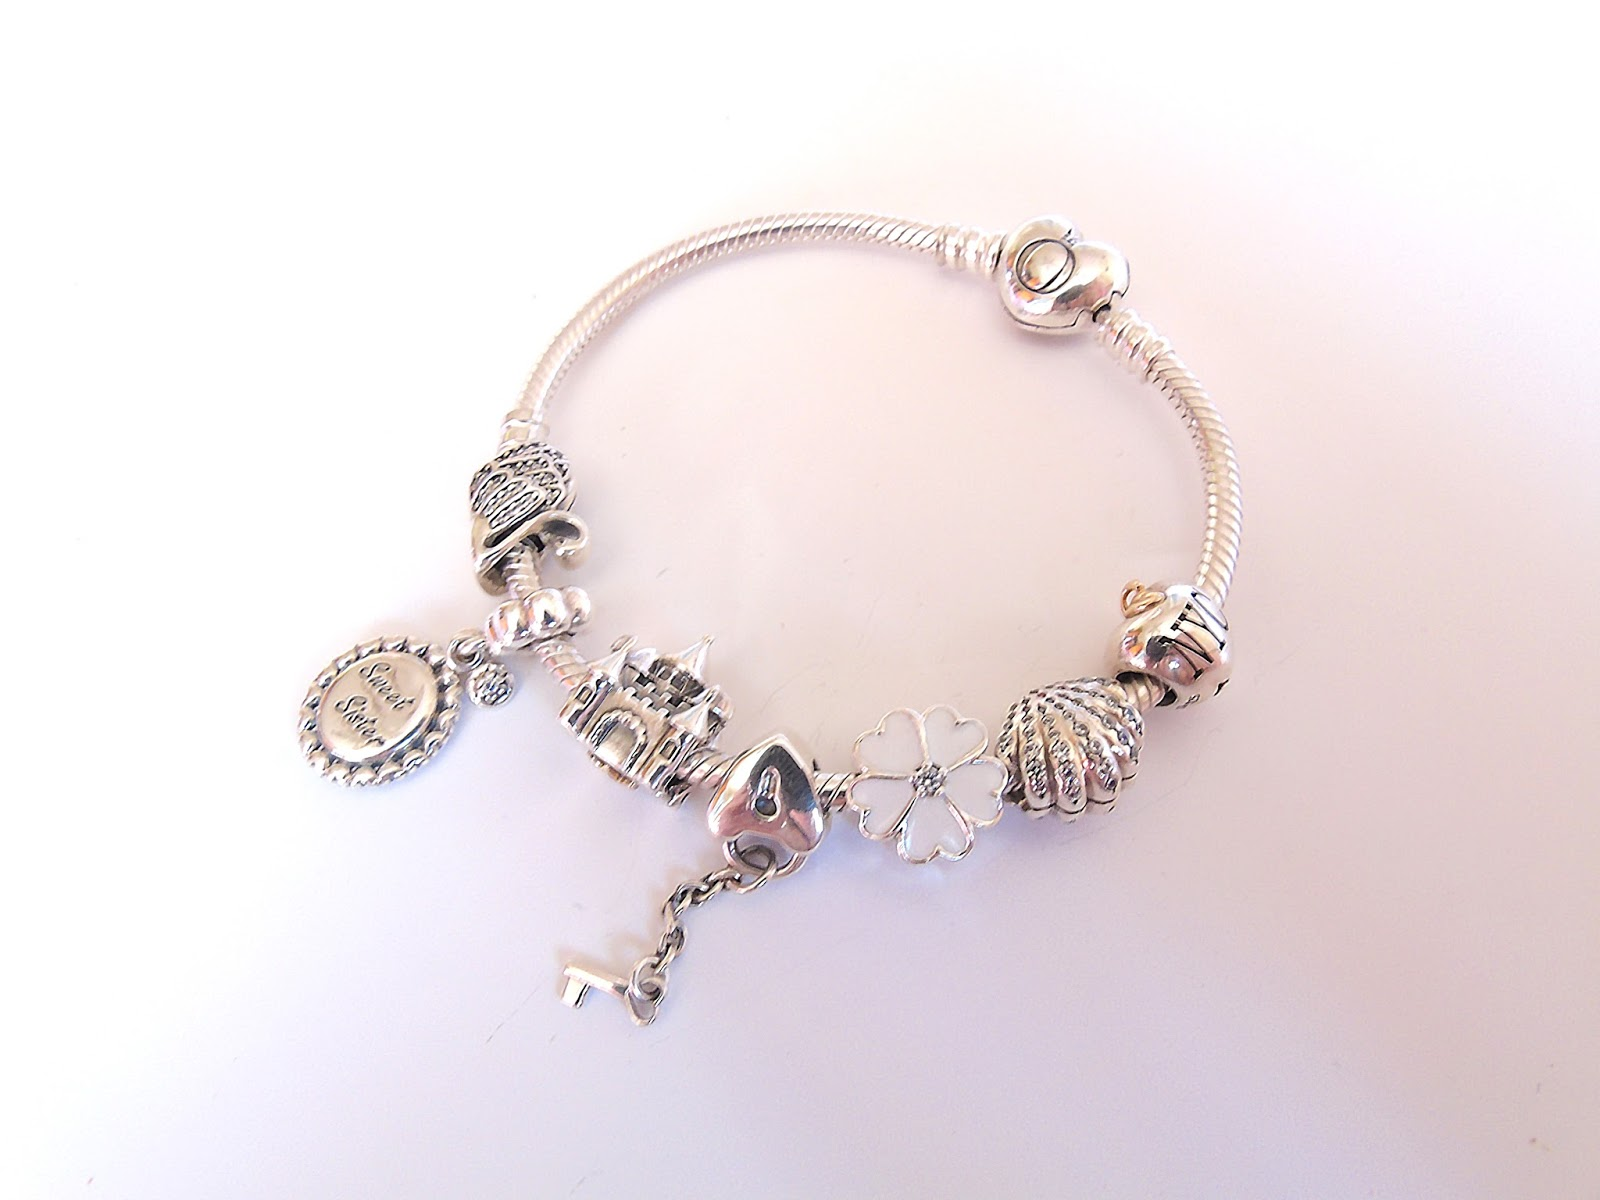 pandora bracelet meaning of charms